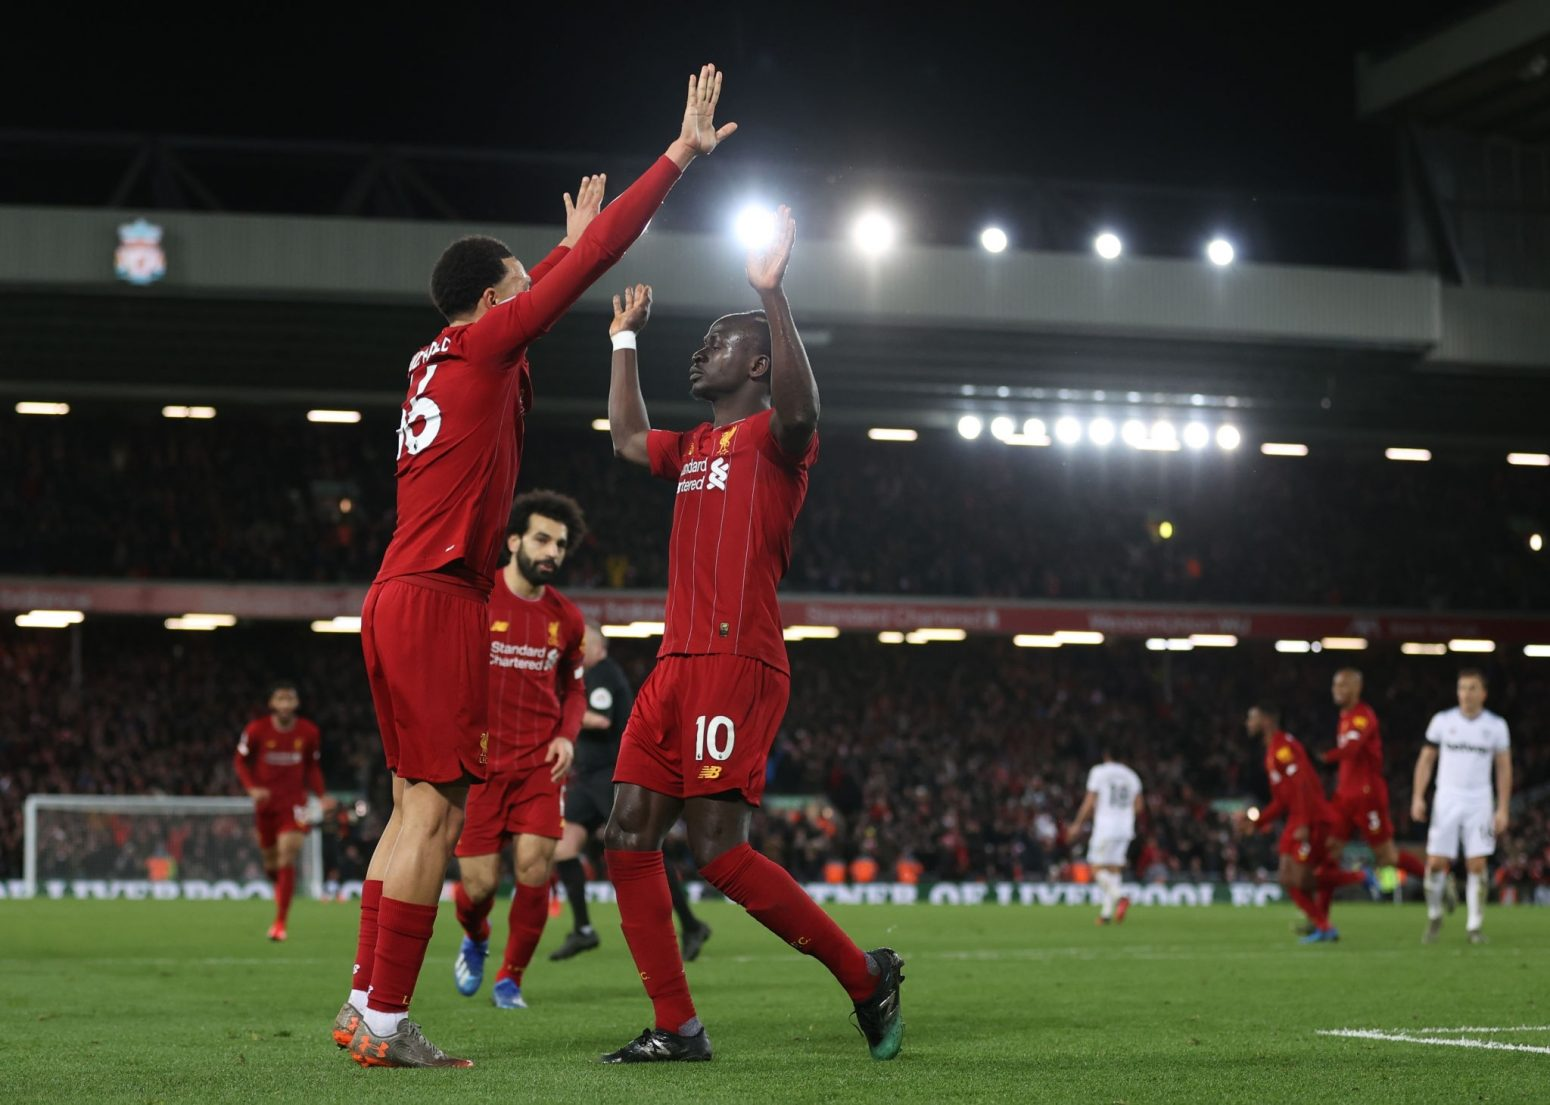 Liverpool 3-2 West Ham United – Highlights and Goals (Video)